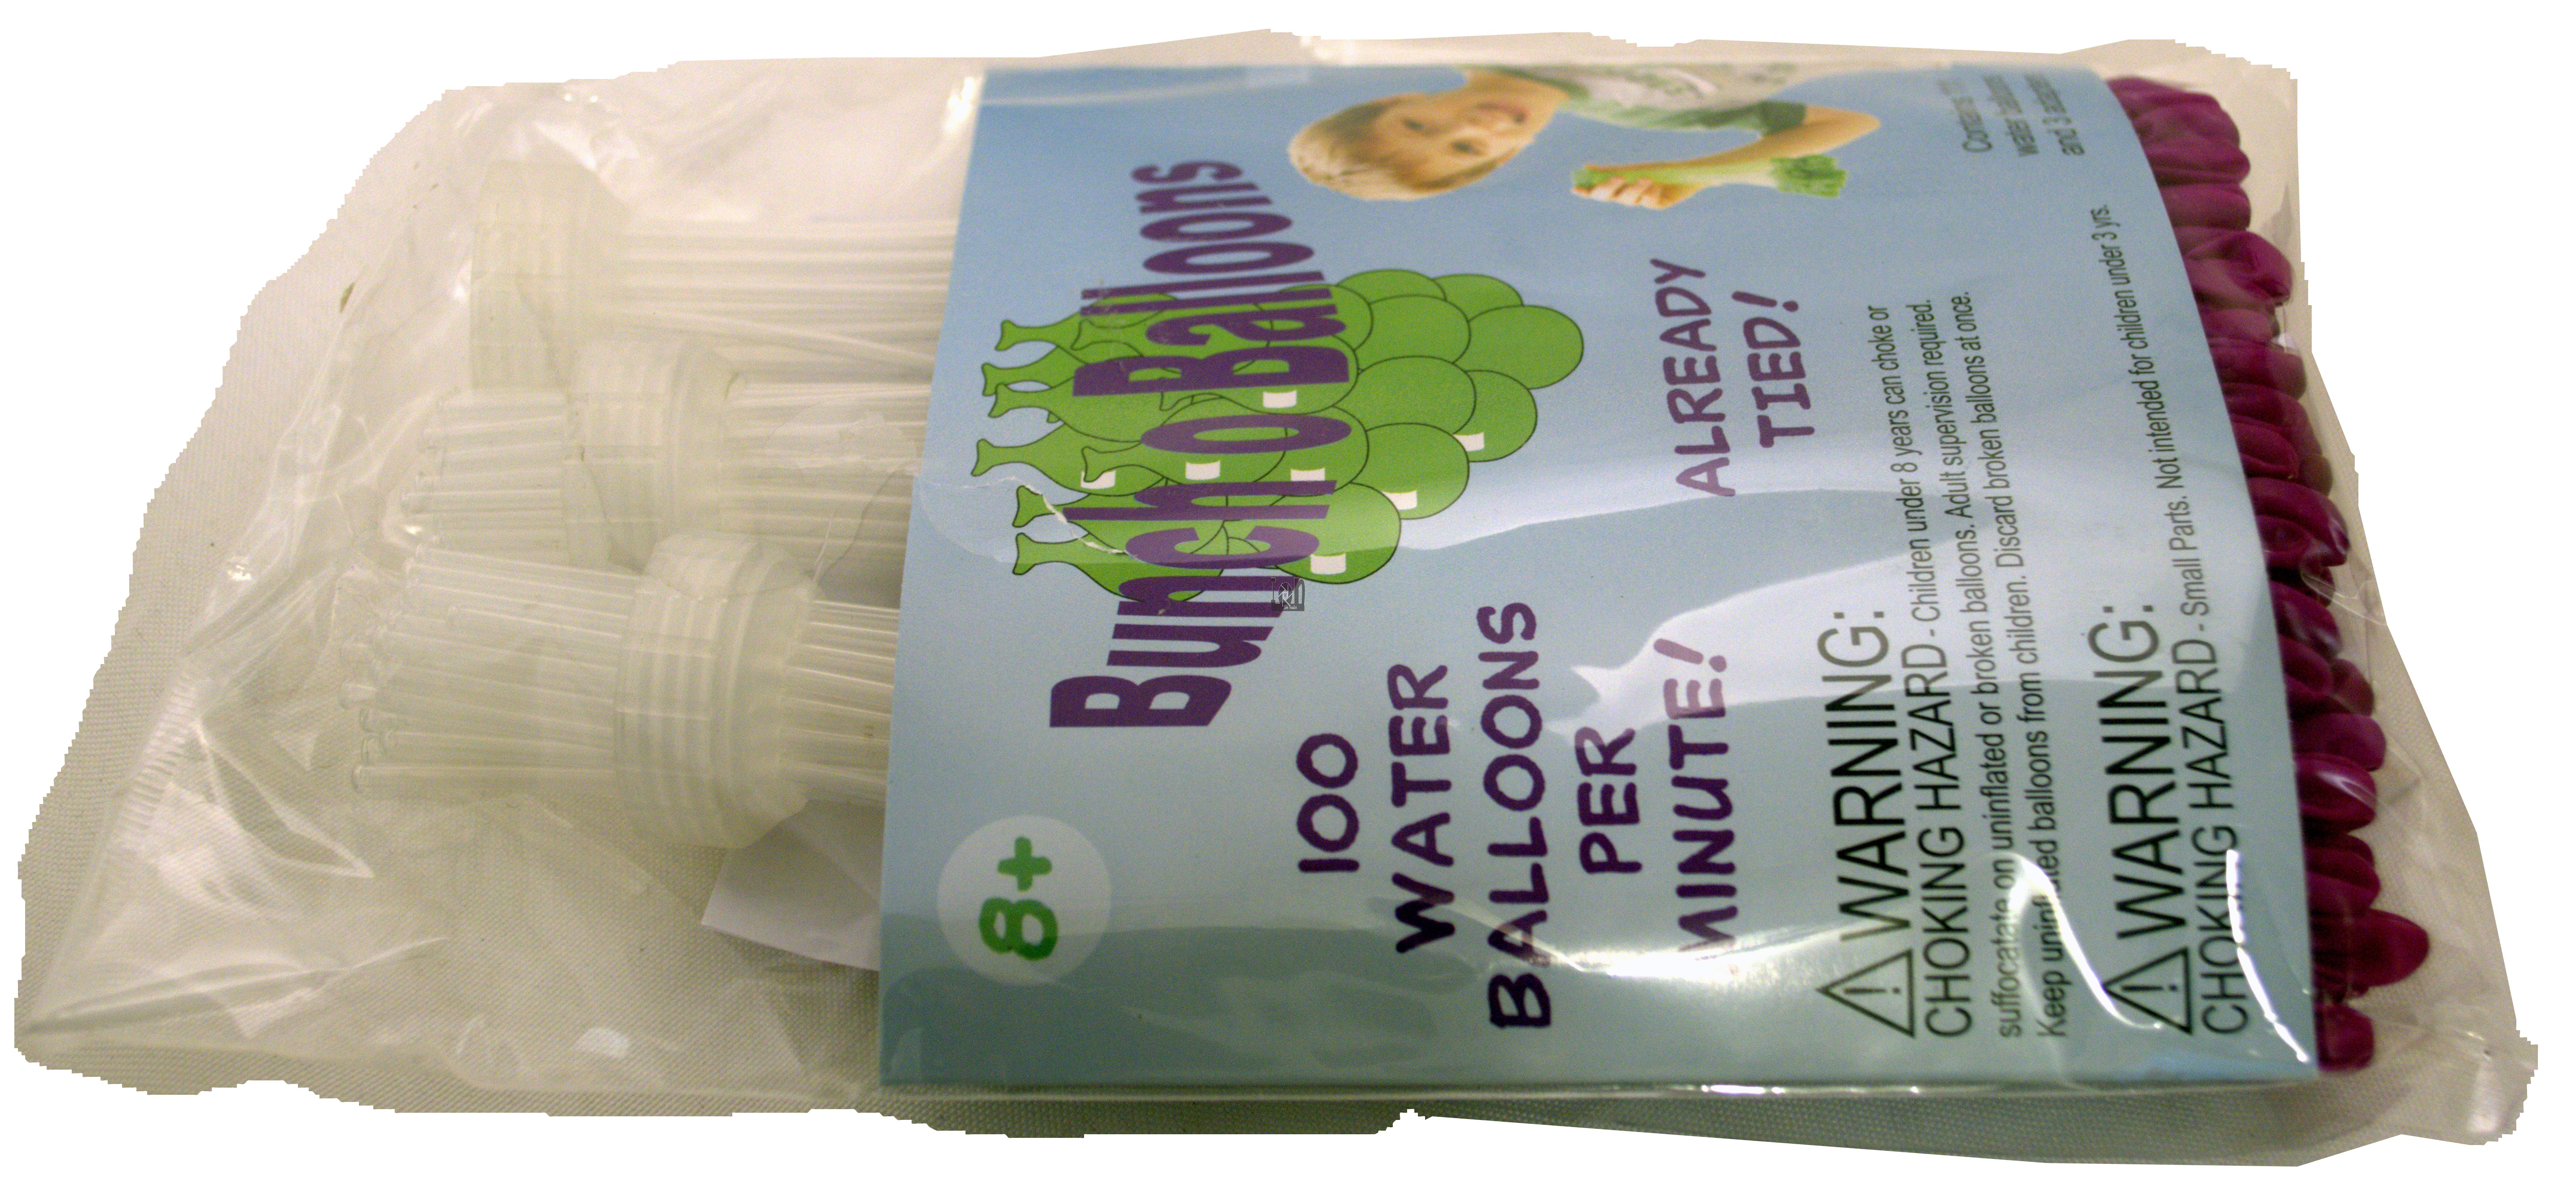 2packs Bunch of Balloons GREEN PURPLE 200 Fast Water Balloon